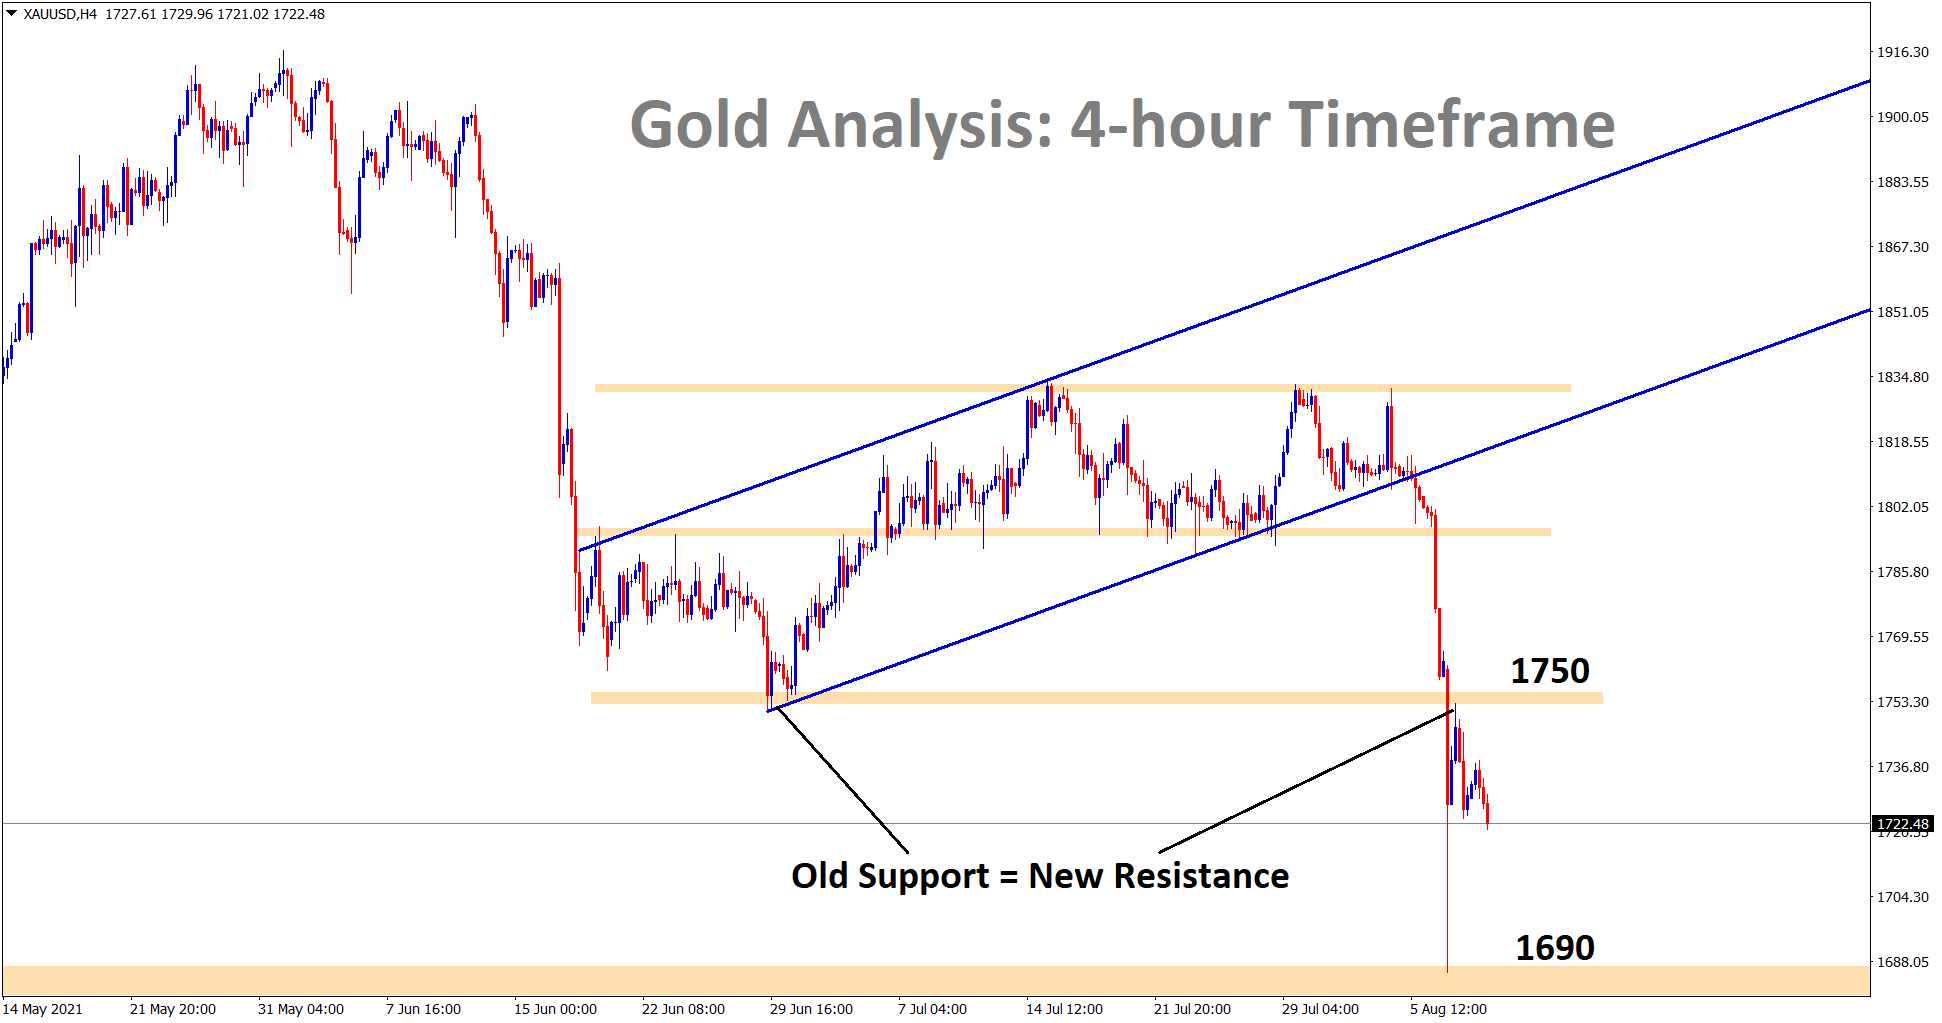 Gold price exactly retested the previous support 1750 and reversed. this shows that Old support now becomes a new resistance